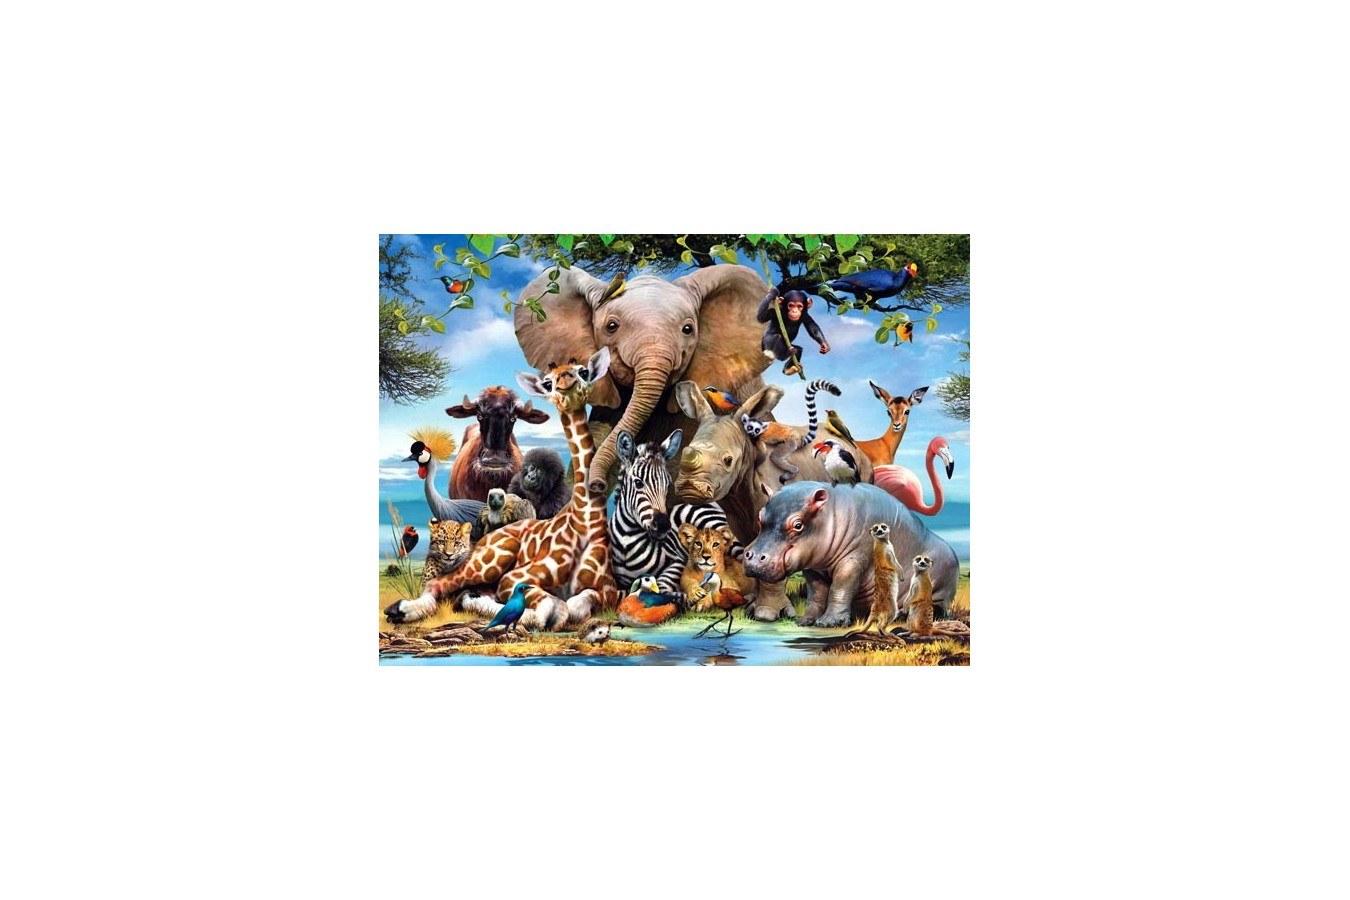 Puzzle Anatolian - Africa Smile, 1000 piese (1043)